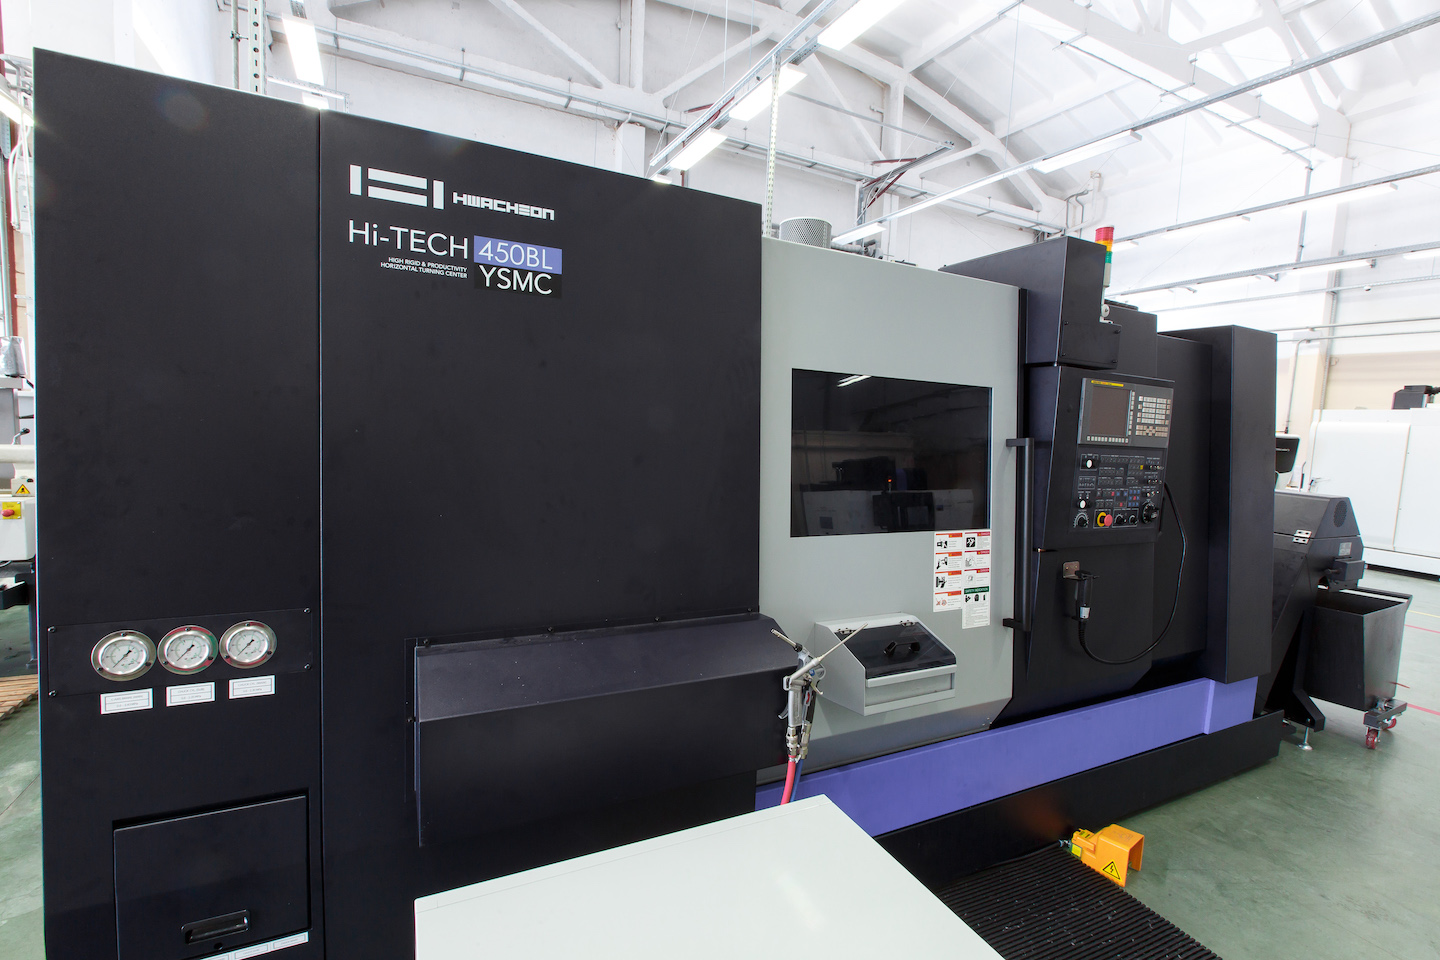 Hwacheon Hi Tech 450BL YSMC